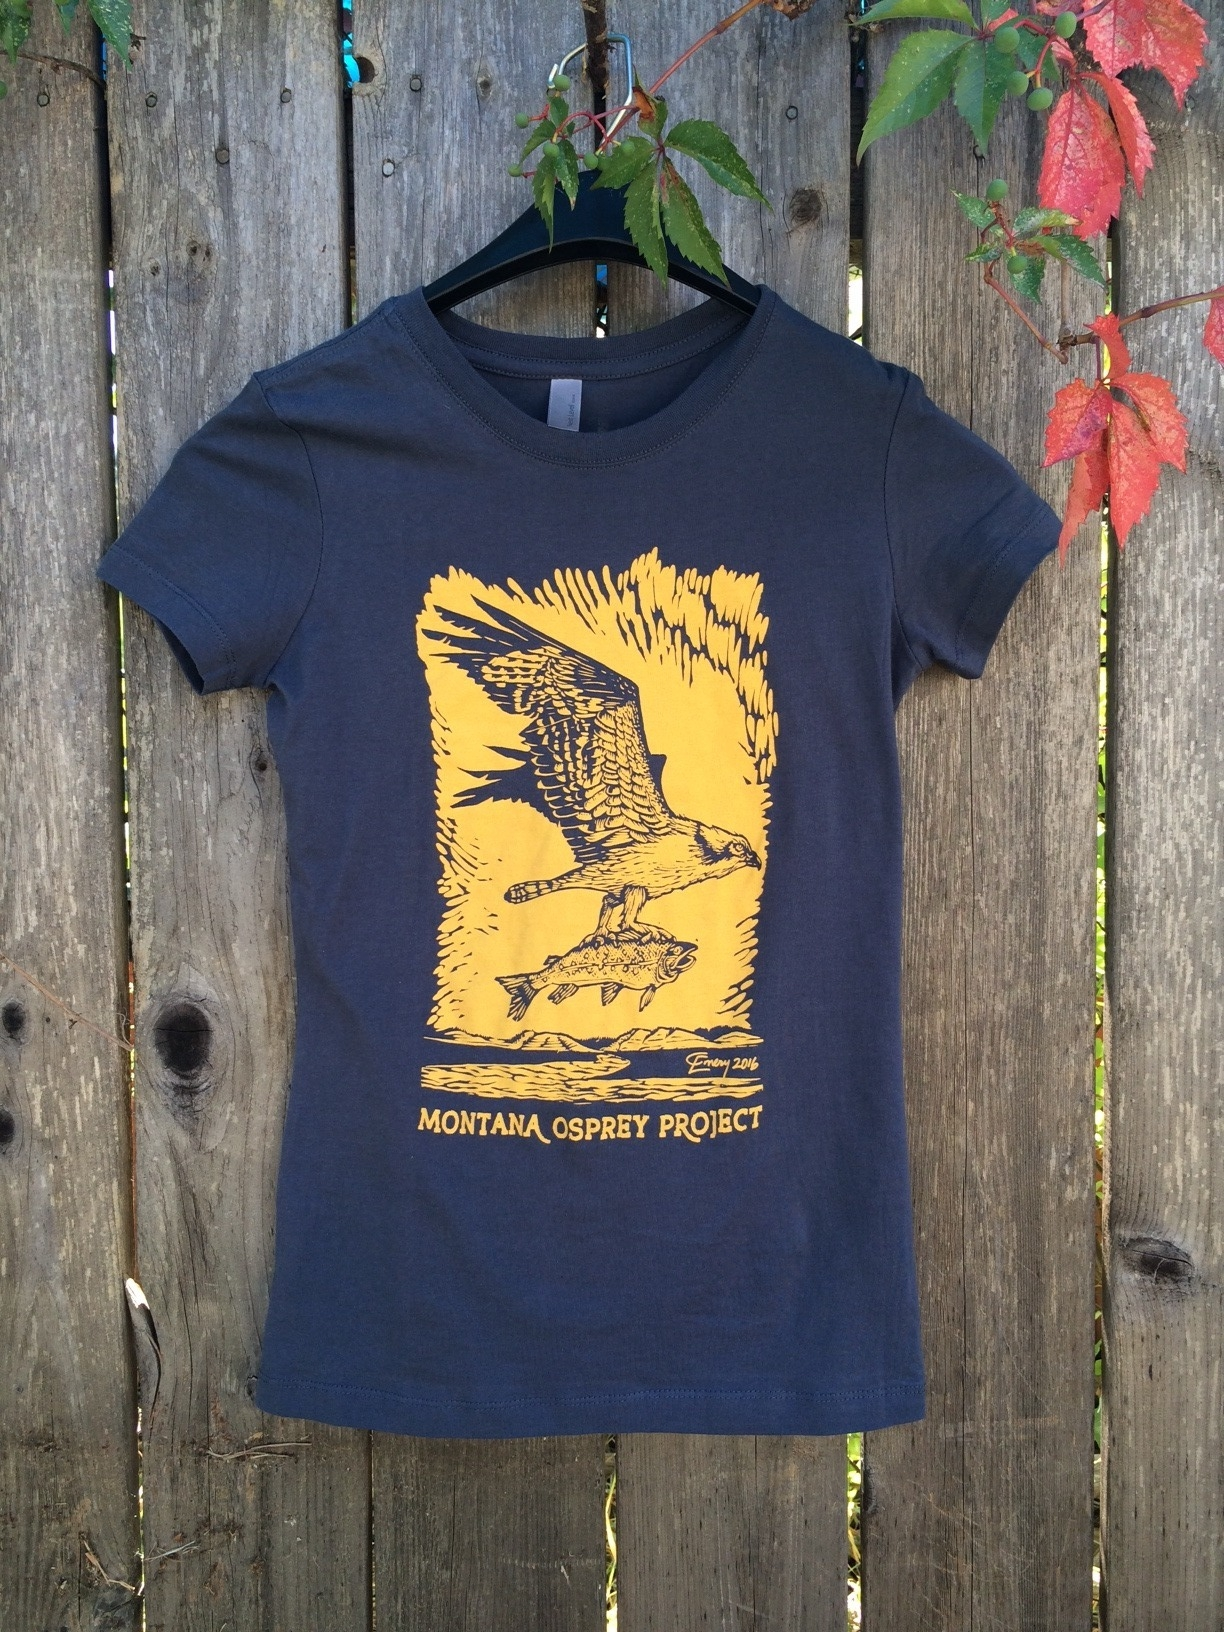 Just one of the many wonderful shirts that helps raise osprey conservation funds this year!